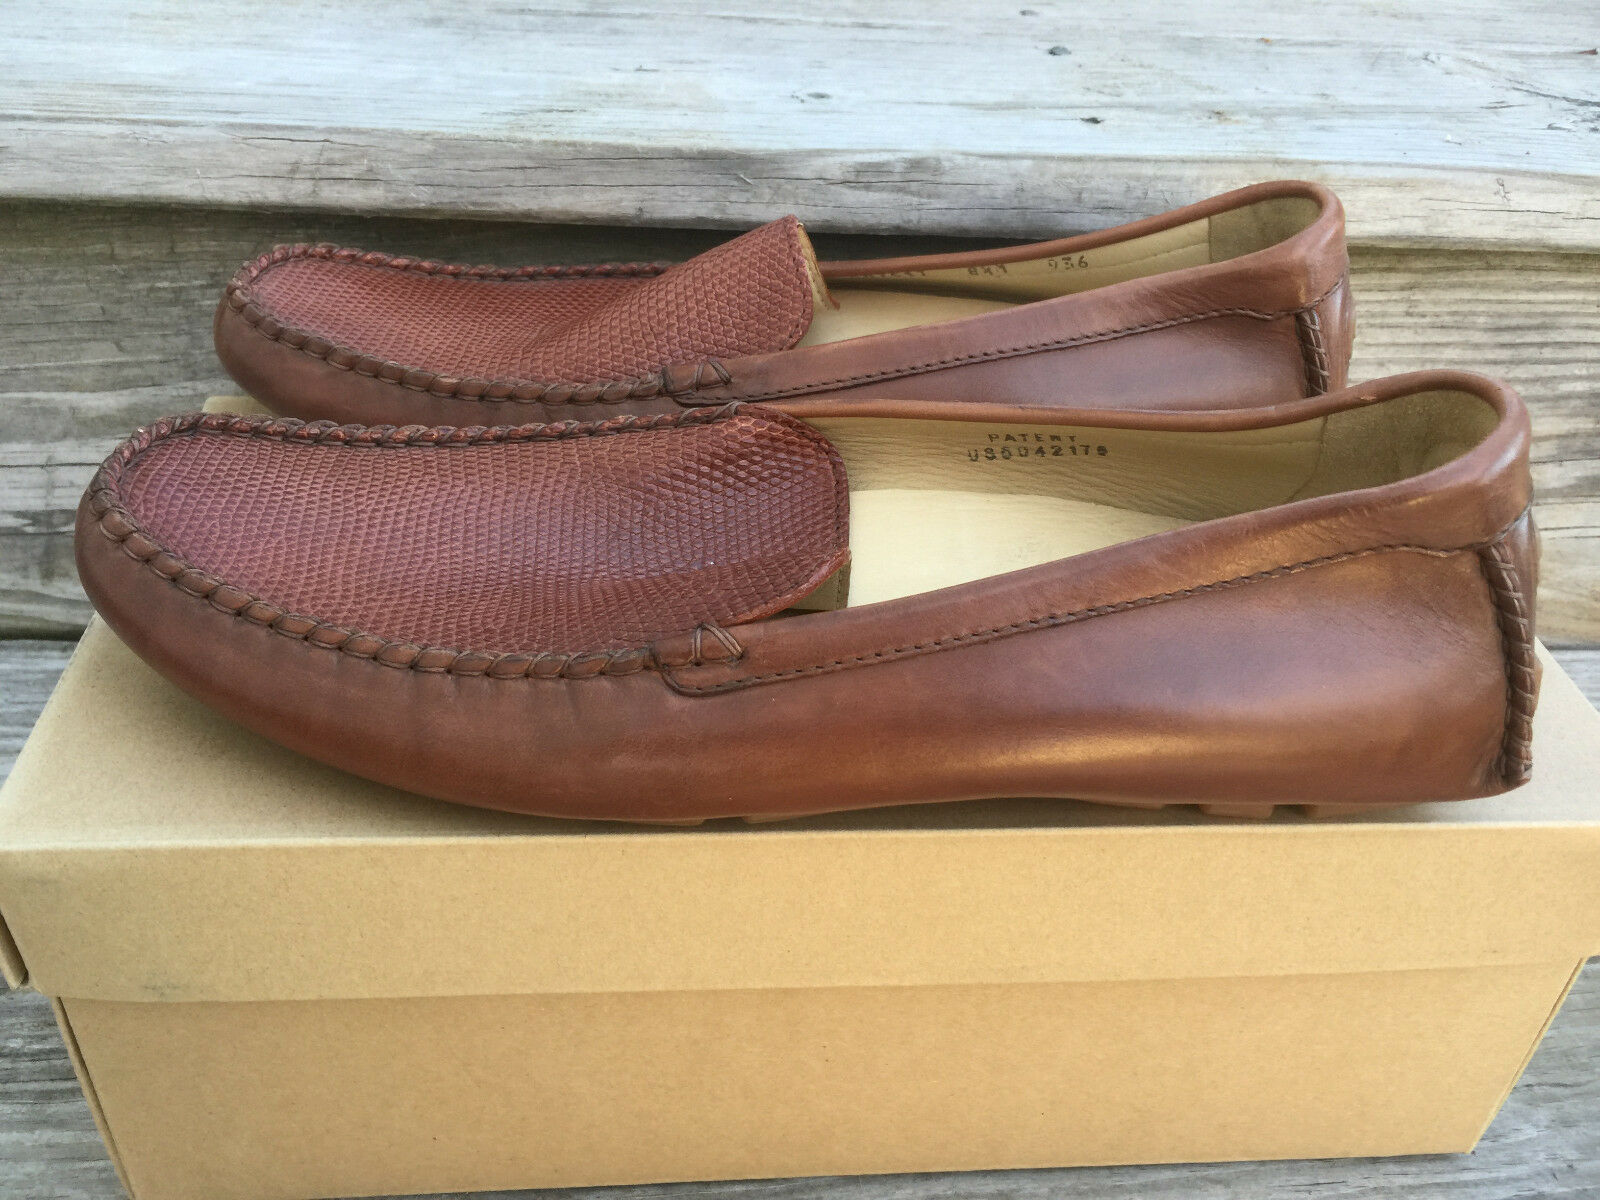 New Cole Haan Exotics Lizard Loafer Brown size 8.5 M C07517 Casual Rare